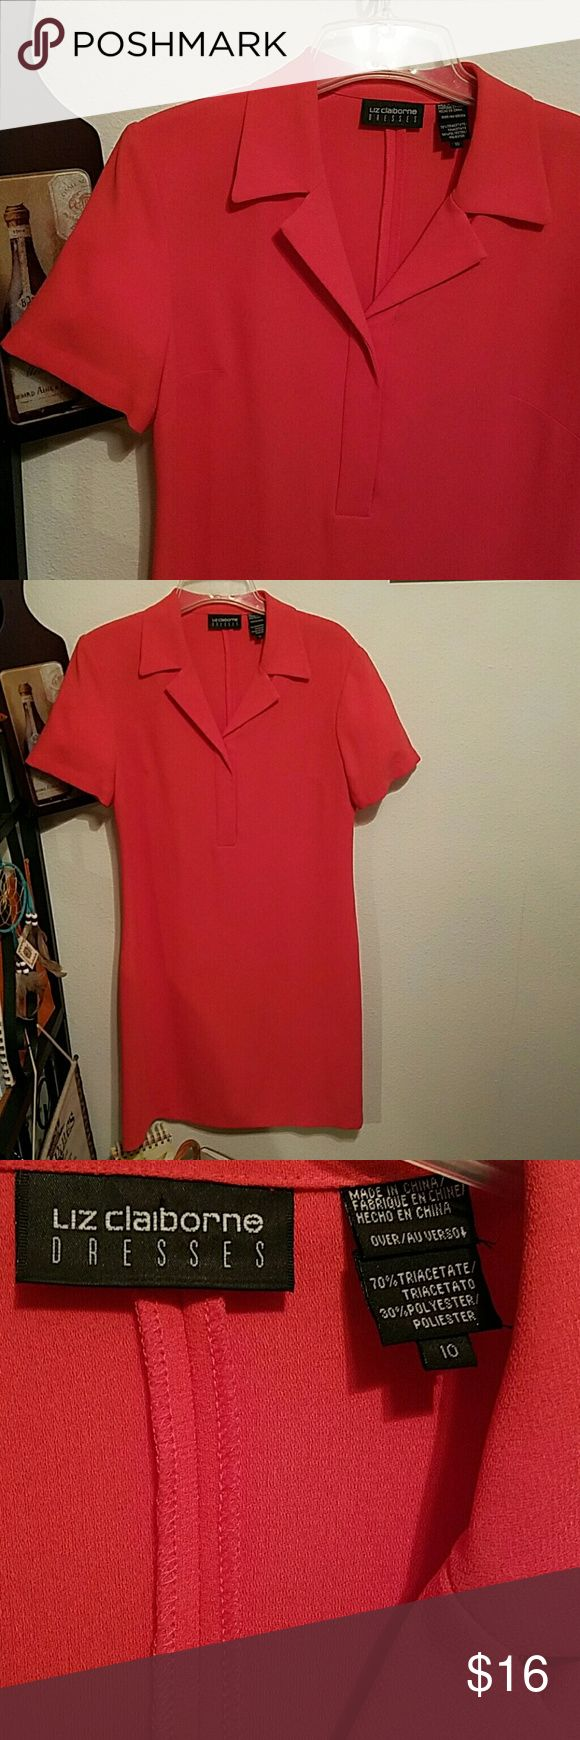 Liz Claiborne Polo Style Dress Super stylish coral polo dress can be dressed down or dressed up depending on your mood.  - Size 10 - Only worn a few times, great shspe - Polyester blend fabric is very lightweight  - Pleated back for a slimming effect Liz Claiborne Dresses